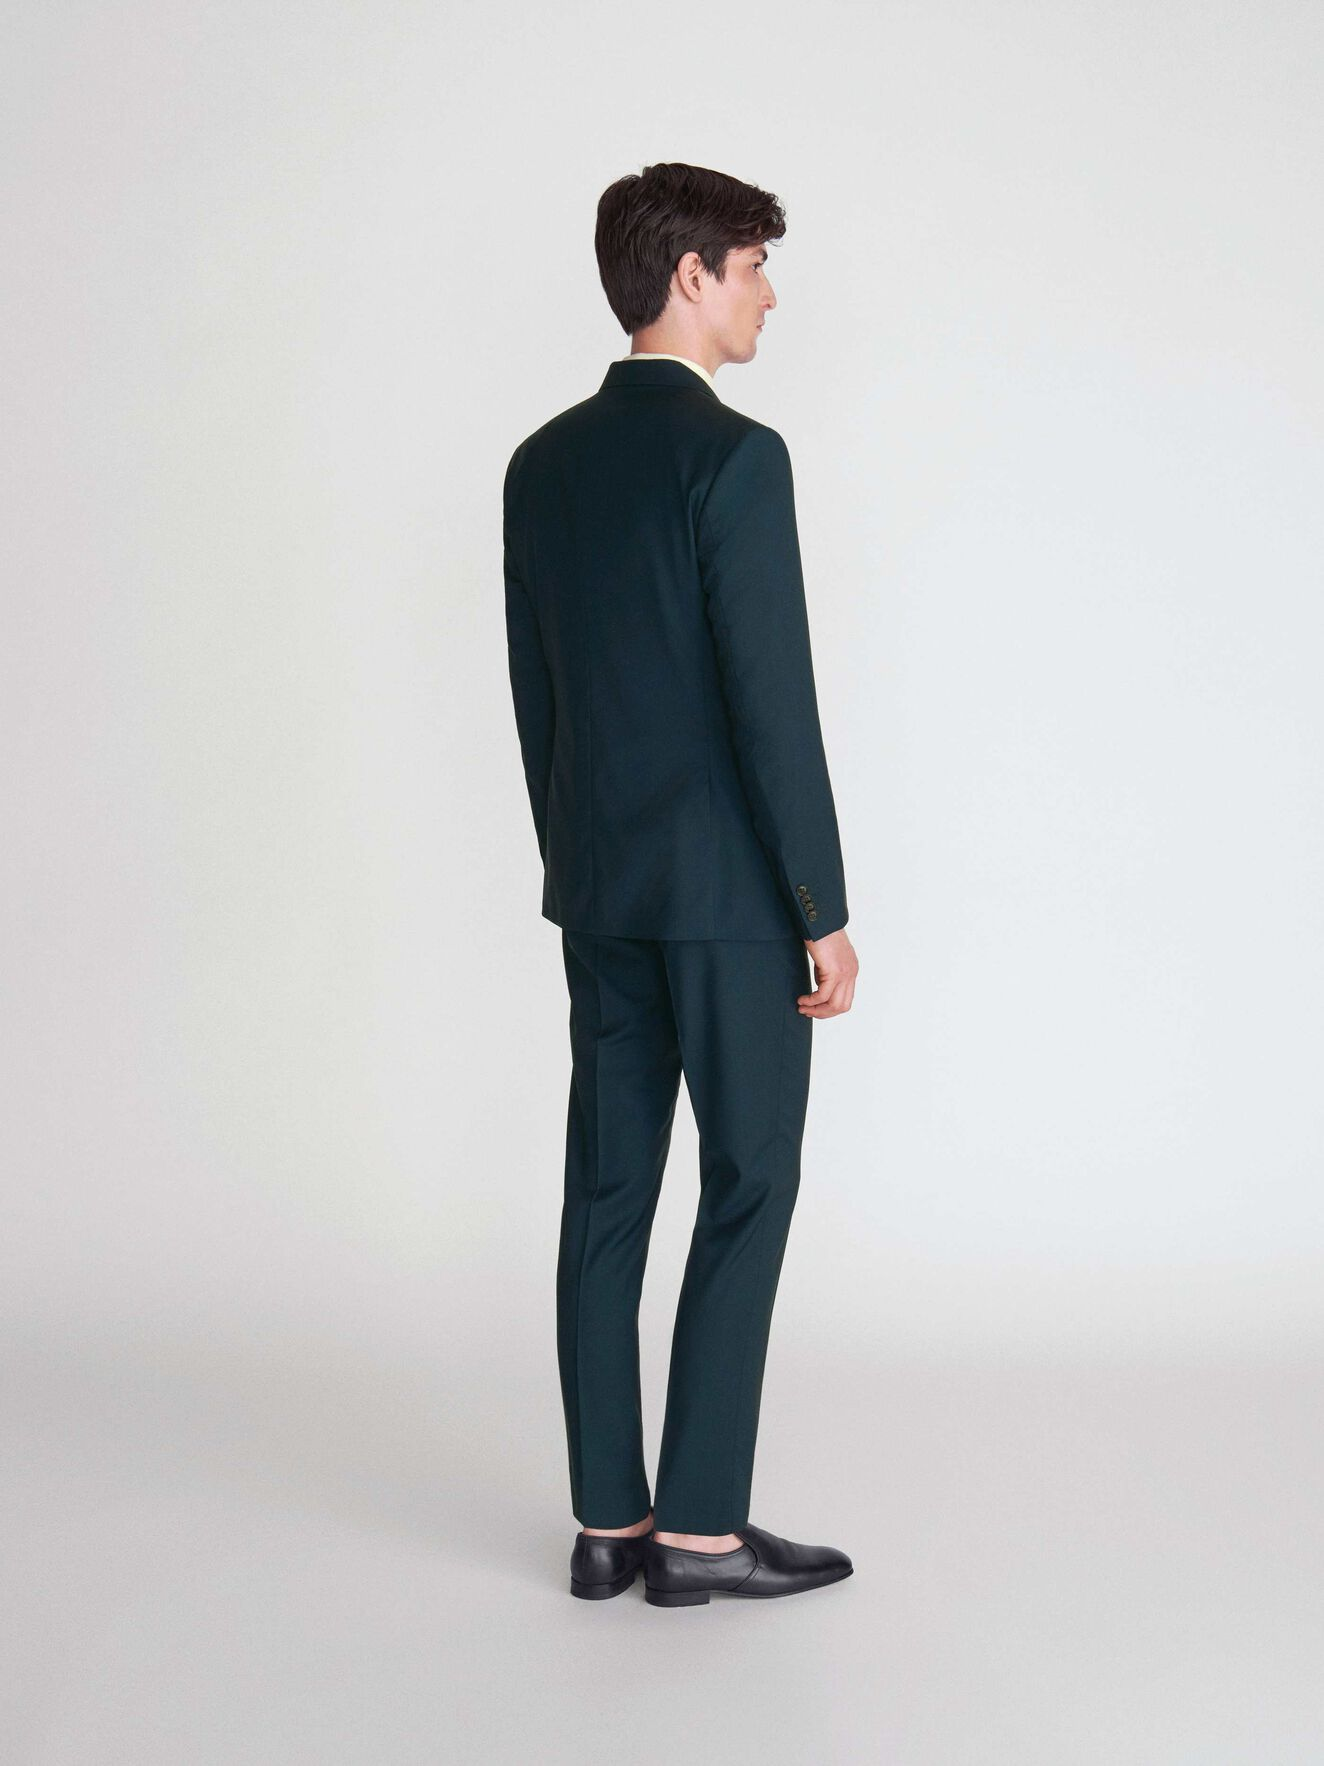 Tordon Trousers in Pine Green from Tiger of Sweden